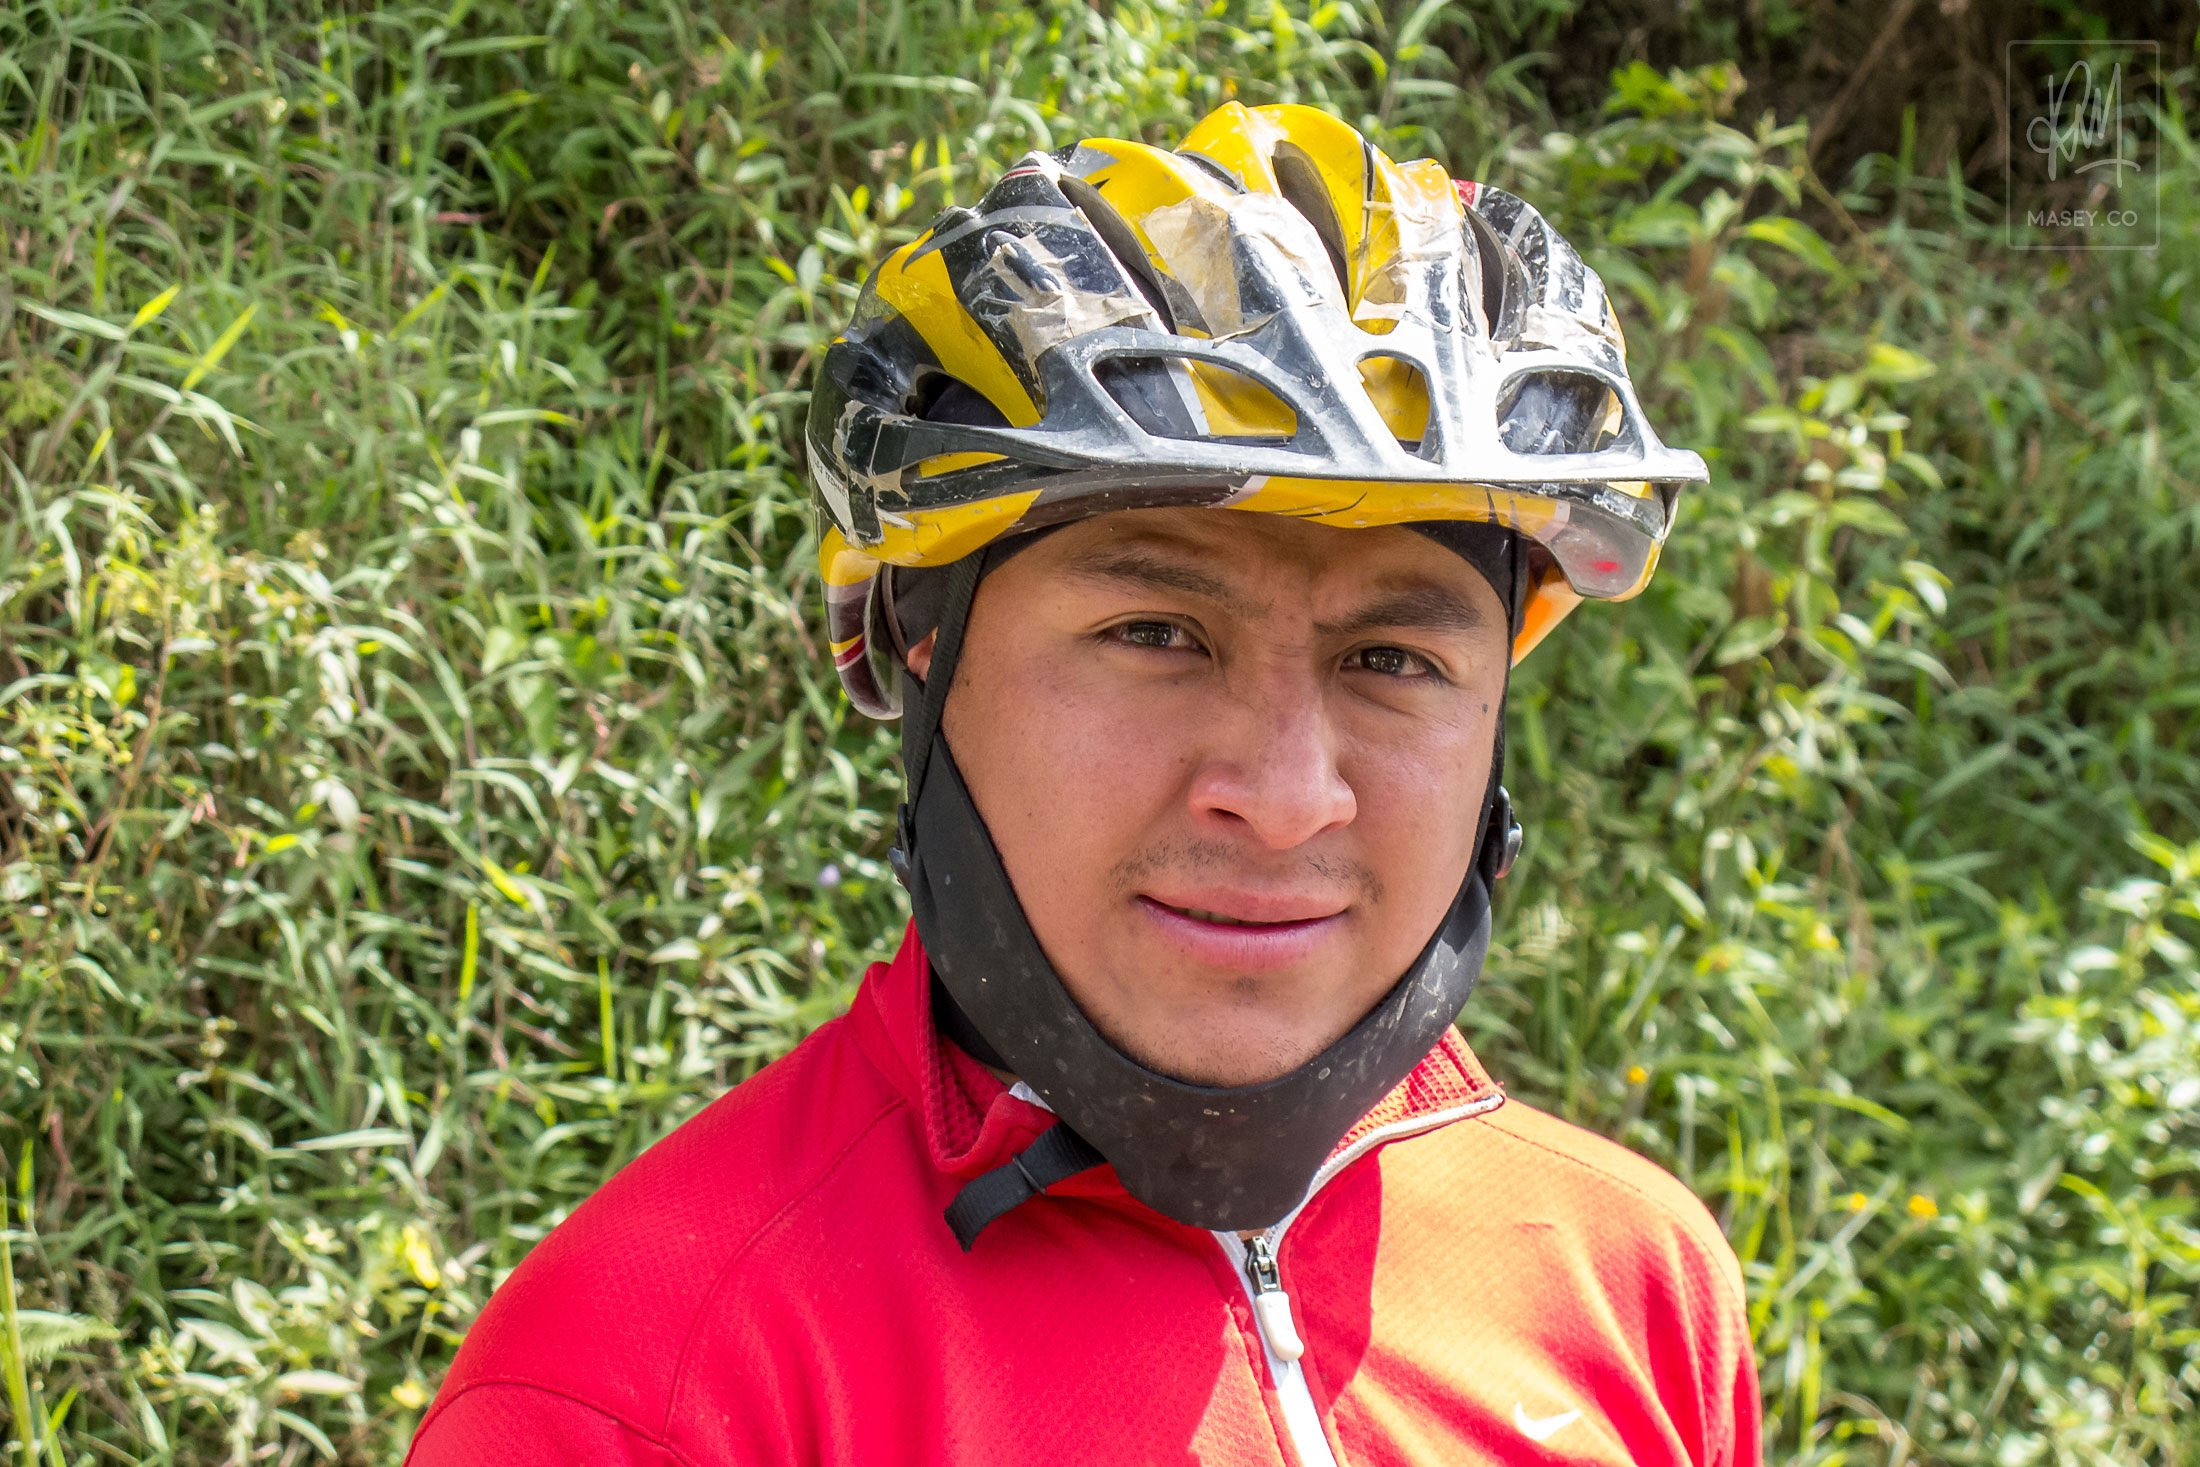 The wonderful Jesse - our downhill guide for the day